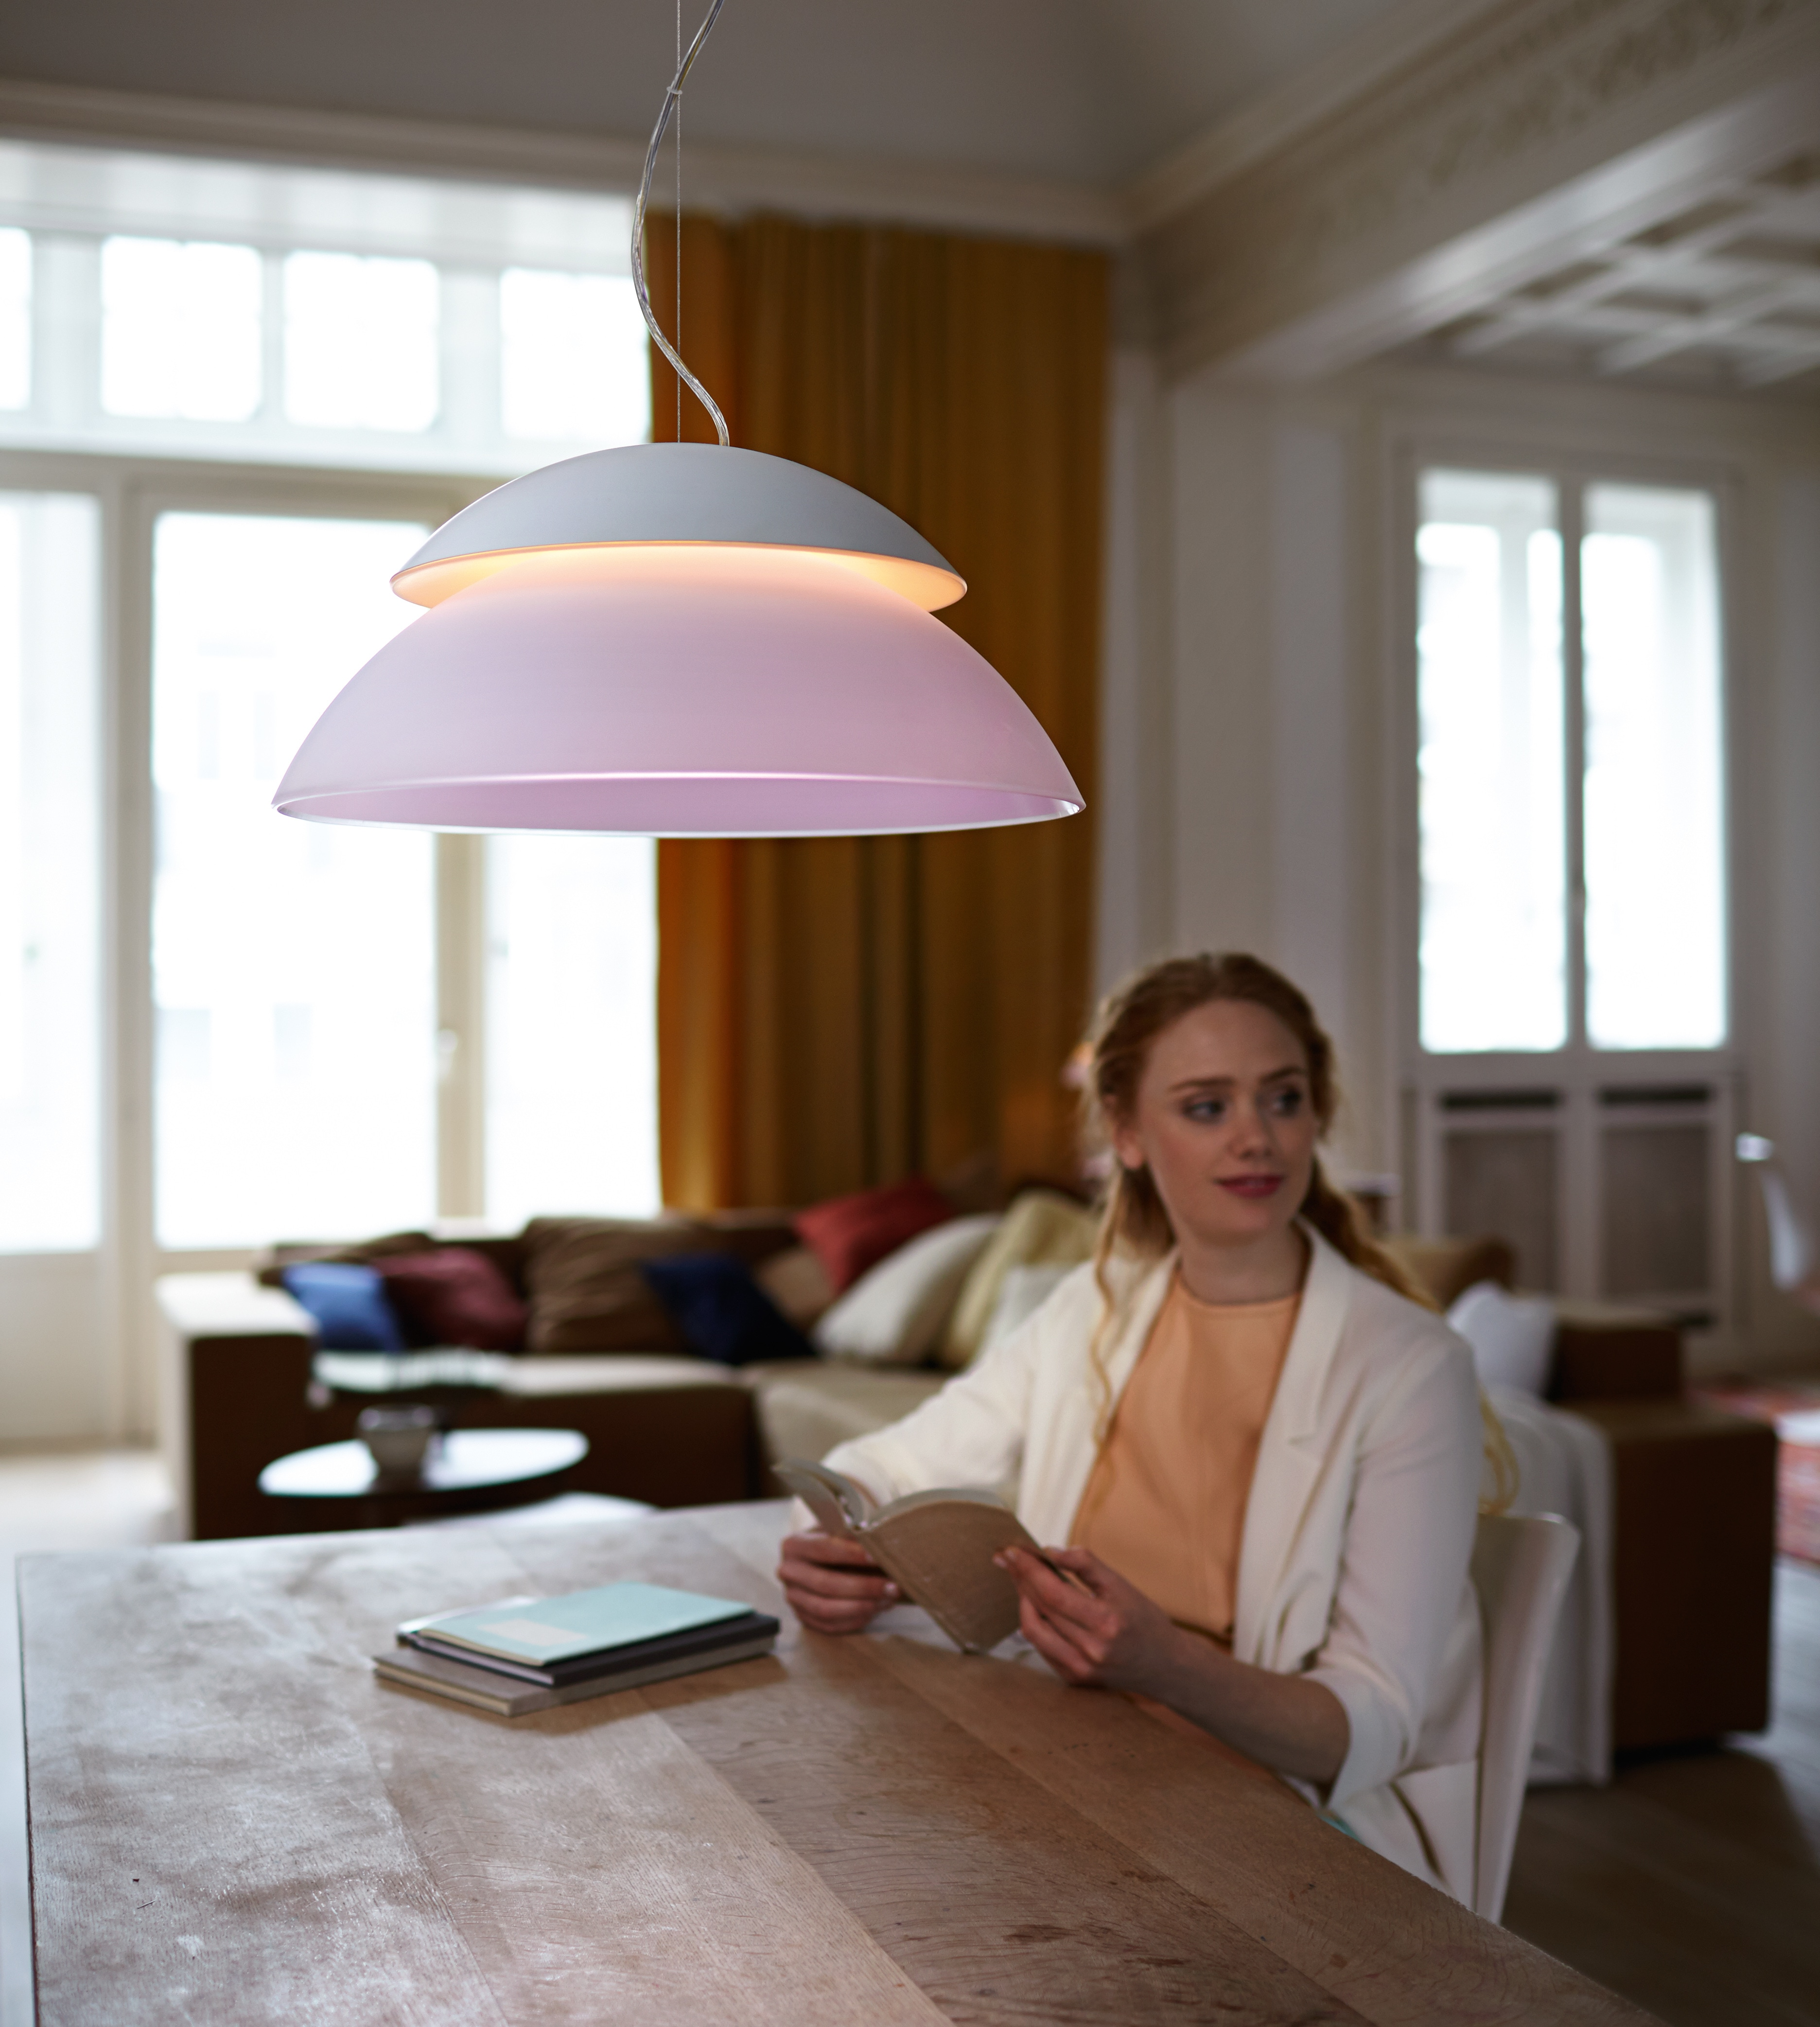 Get the ultimate light experience with the new Philips Hue